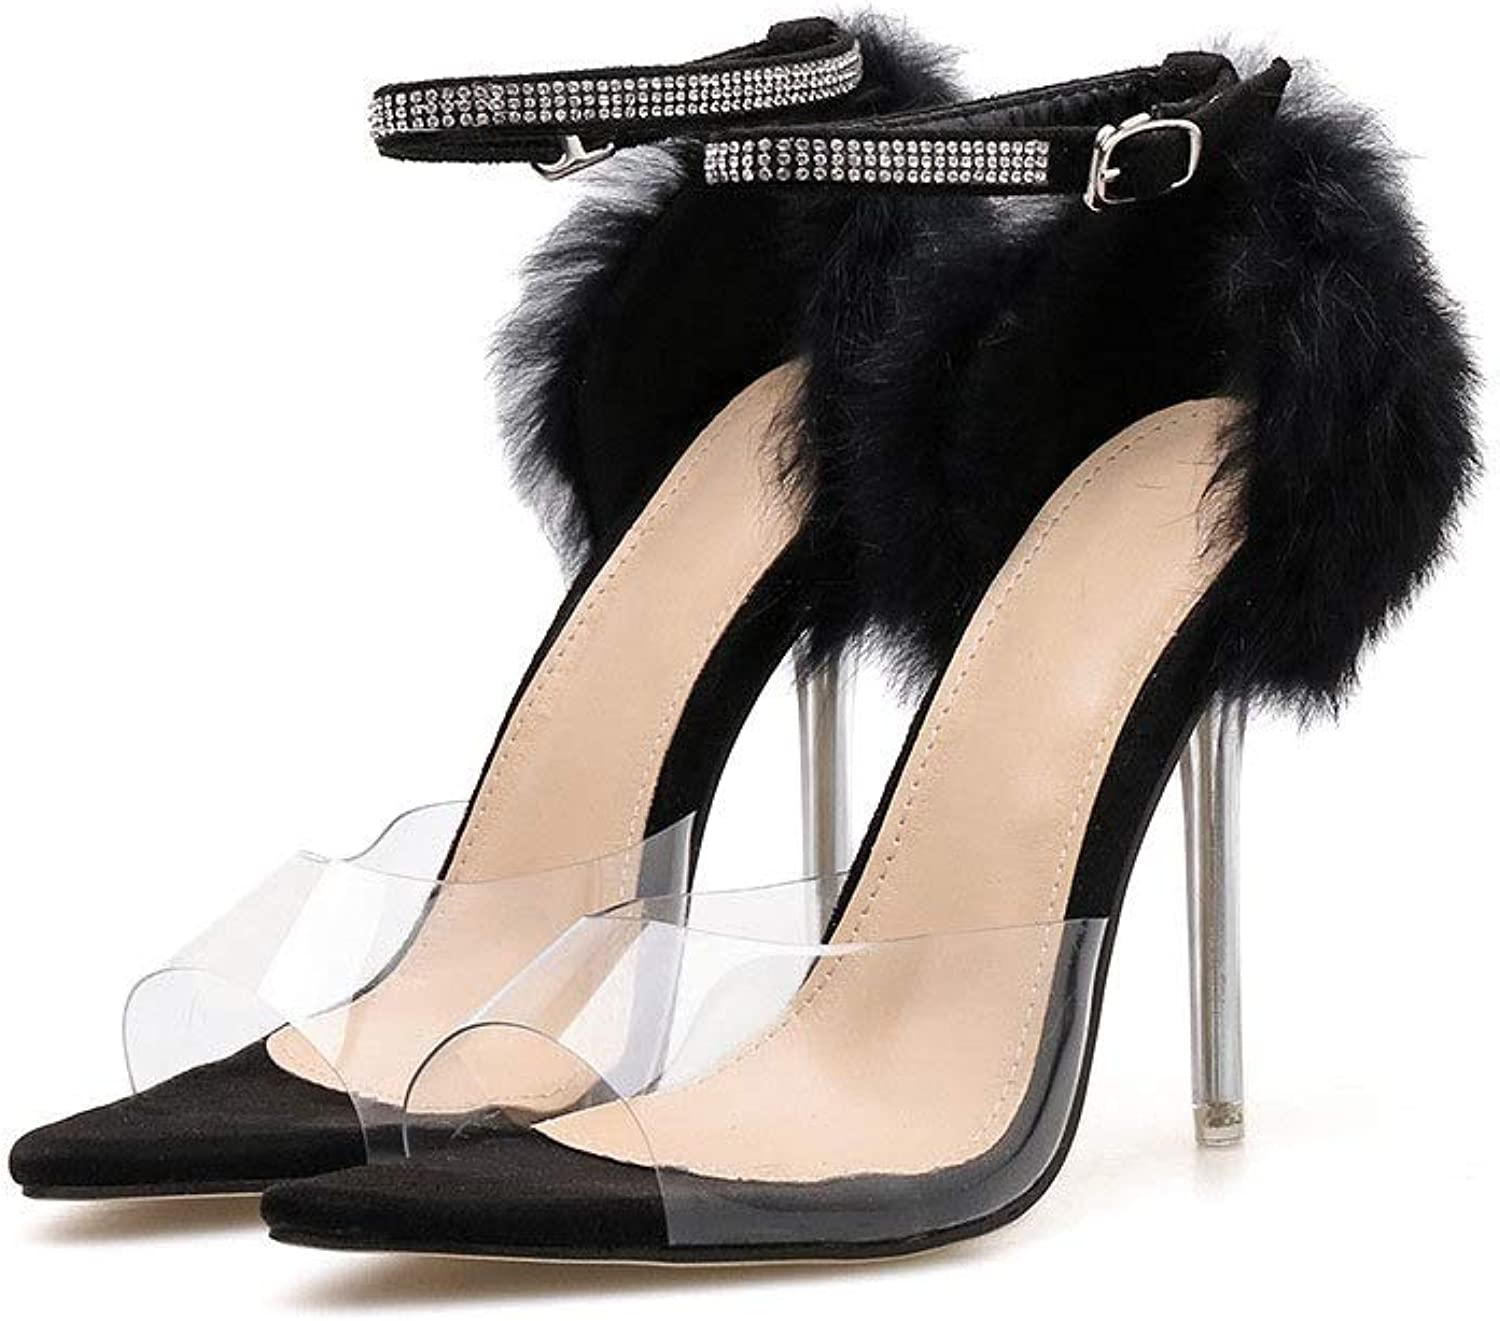 Transparent Stiletto Heels, Rhinestone High Heels with Buckles (color   Black, Size   9 US)